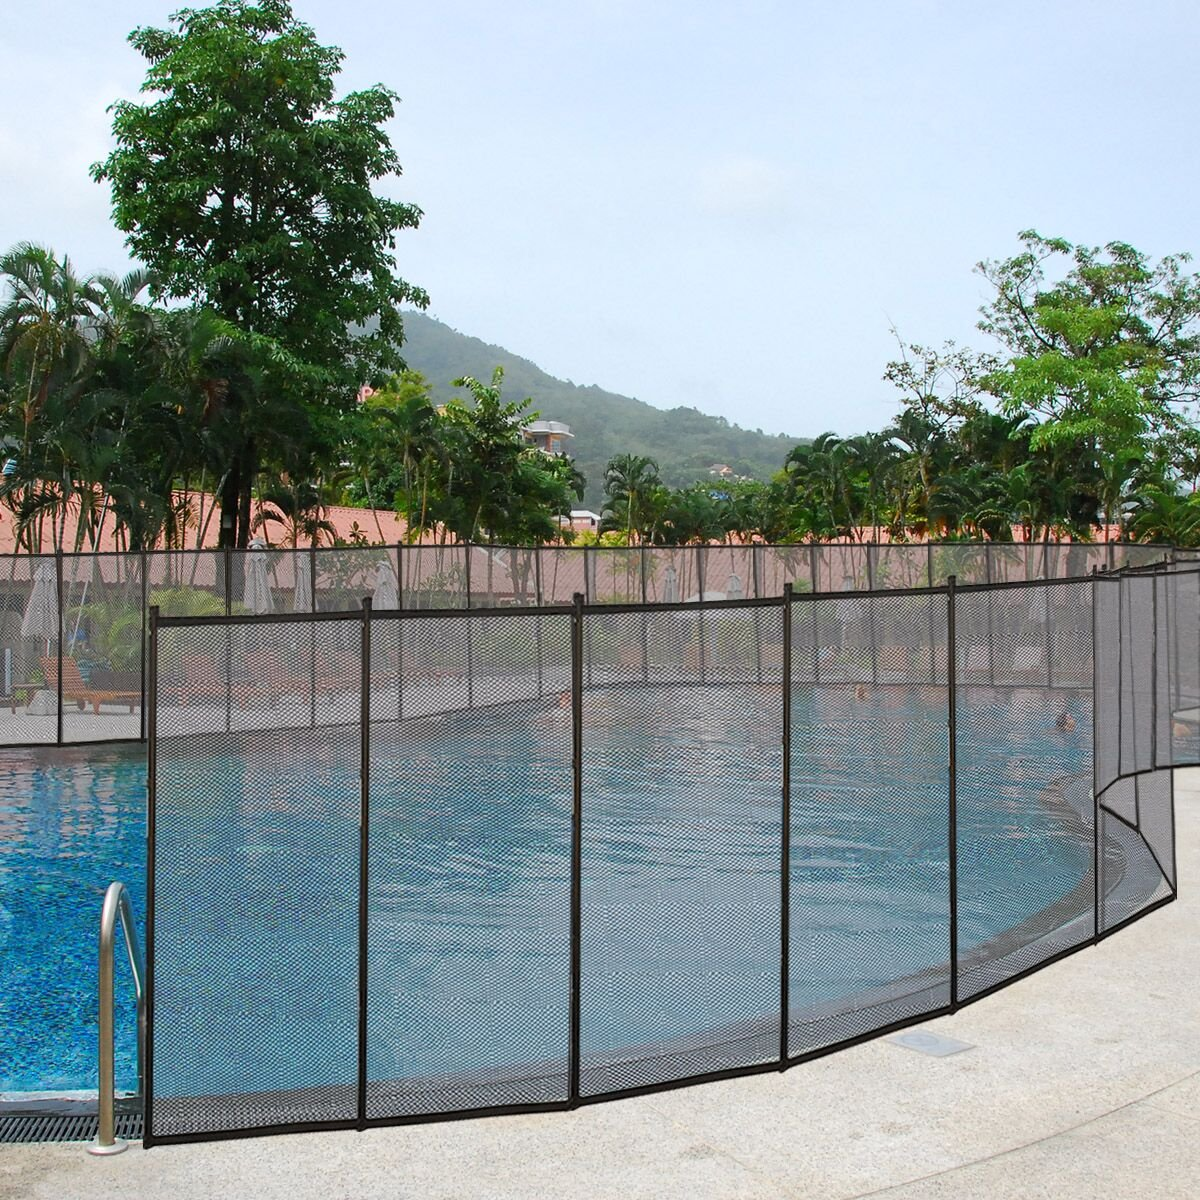 Giantex 4'x12' Pool Safety Fence In-Ground Swimming Pool Fence Section Prevent Accidental Drowning